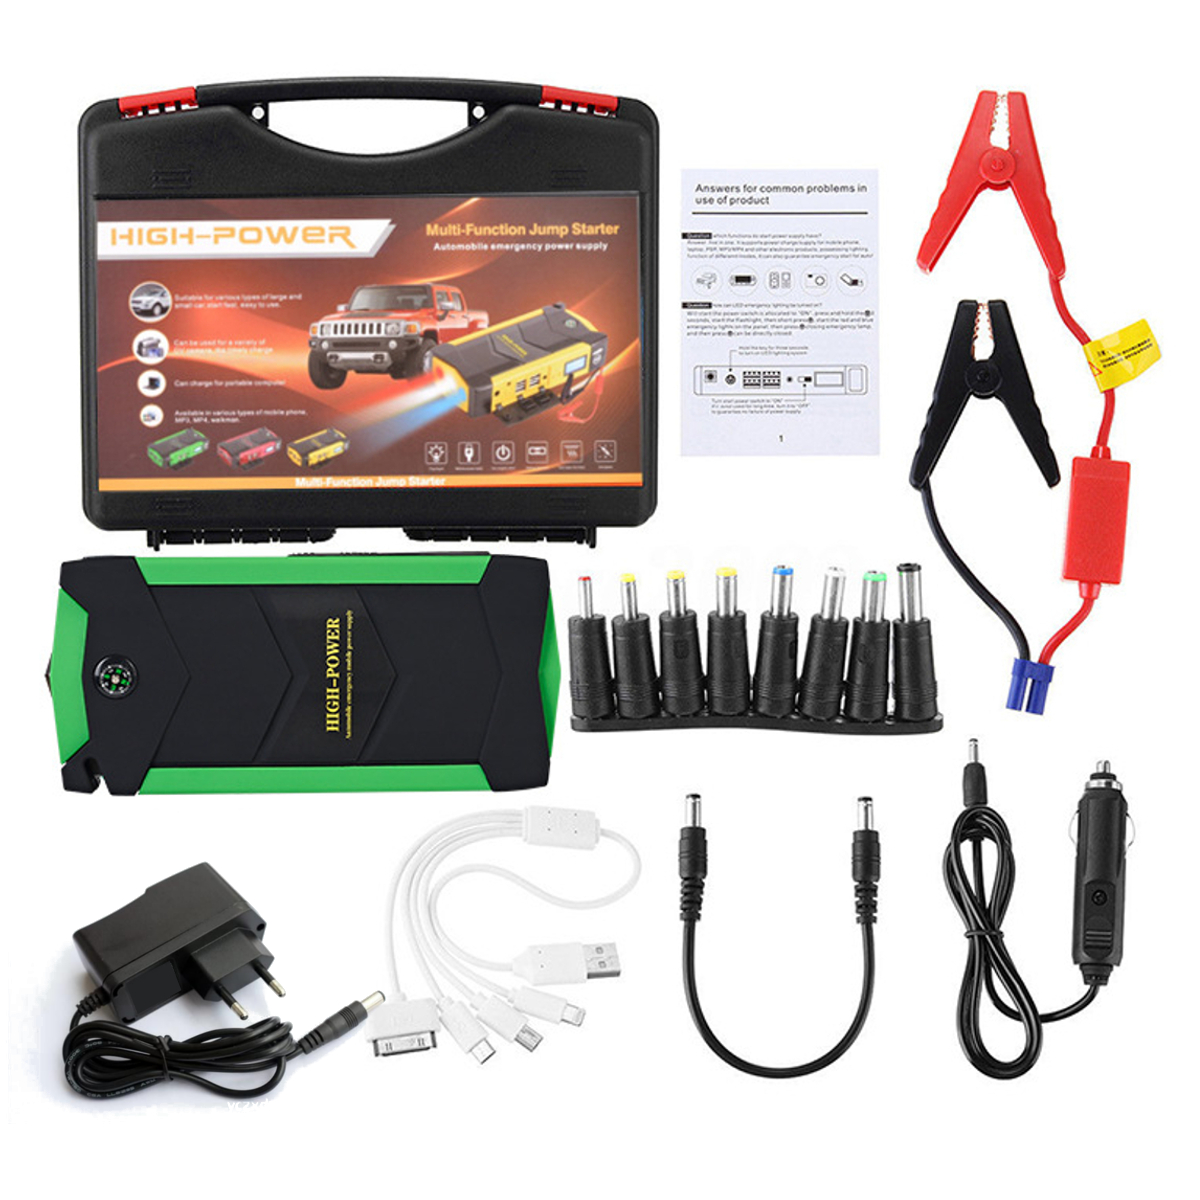 Car Battery Jump Starter 12V 82800mAh 4 USB Portable Charger Booster LED Emergency Multifunction Power Bank Kit for Car